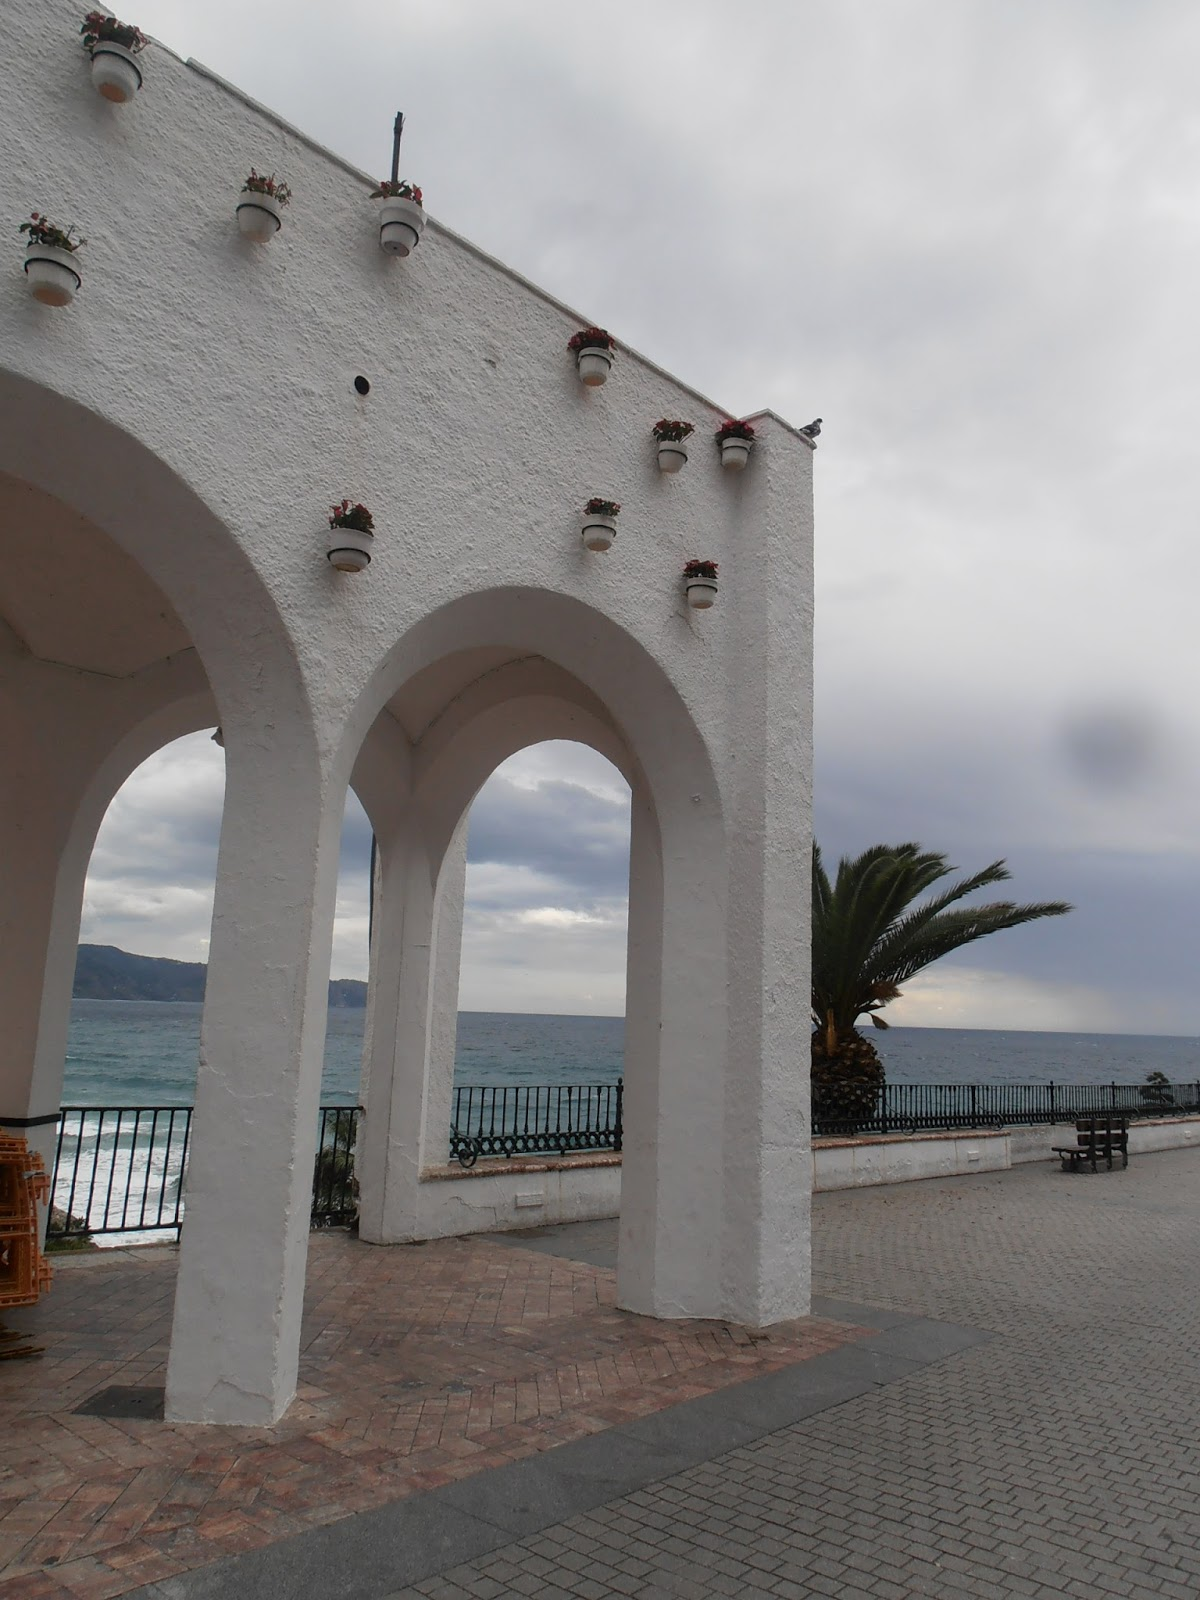 Toboso Apar Turis Nerja A Great Winter Destination Caves Balcony And A Lack Of